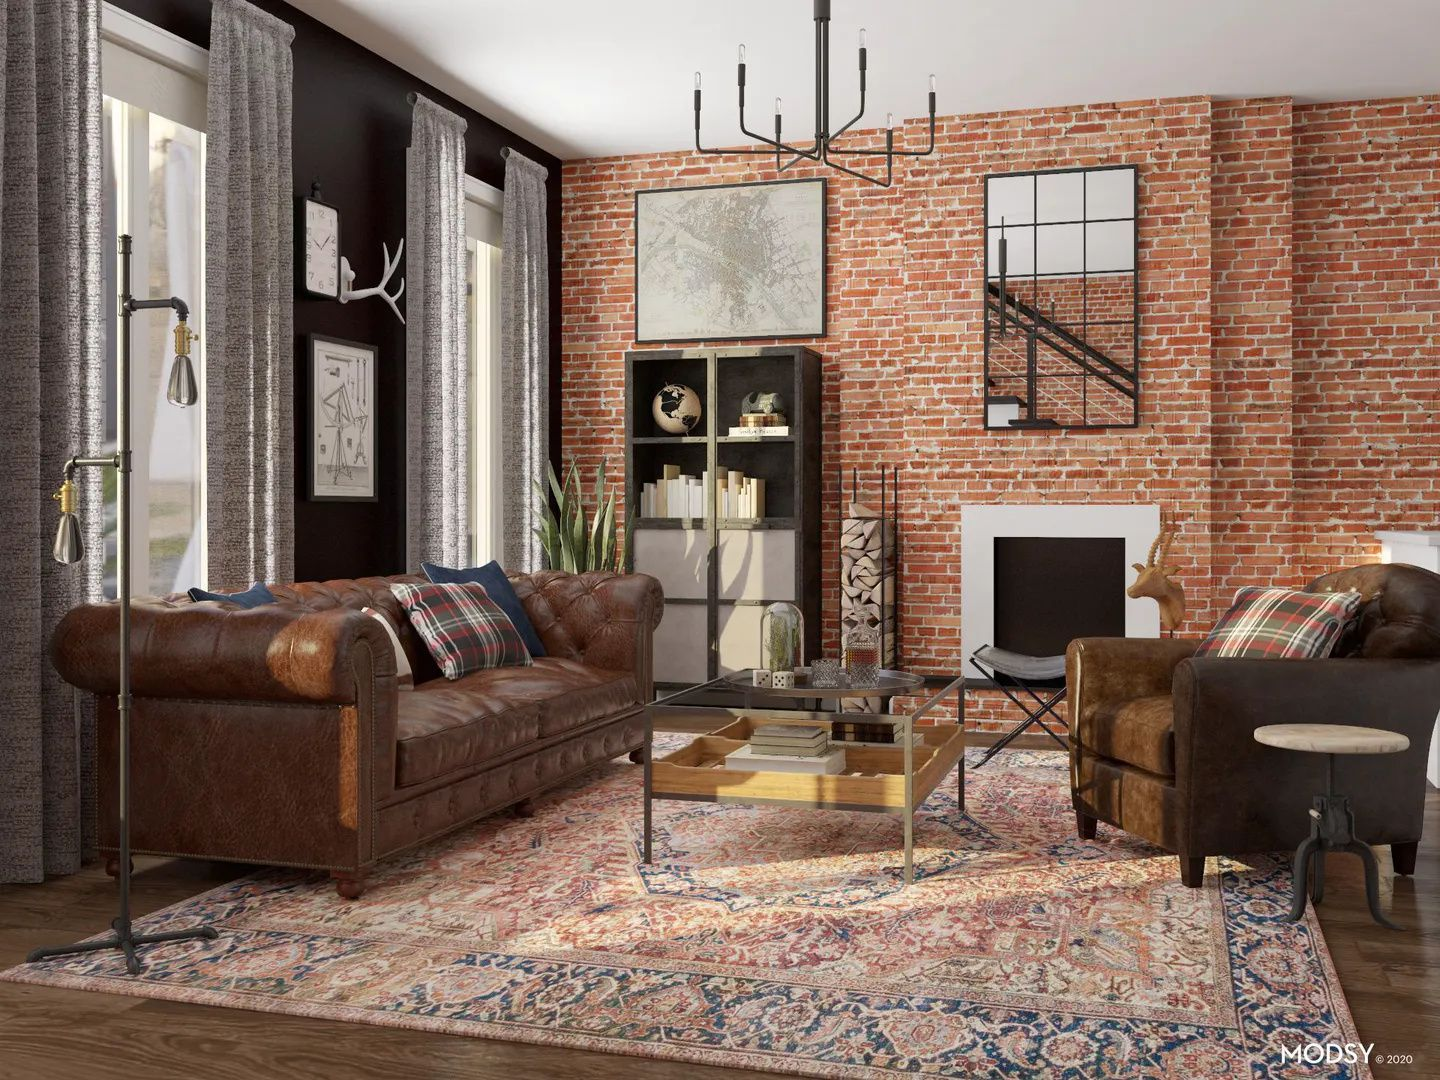 How To Design A Living Room With High Ceilings Modsy Blog In 2021 Industrial Style Living Room Industrial Living Room Design Americana Living Rooms